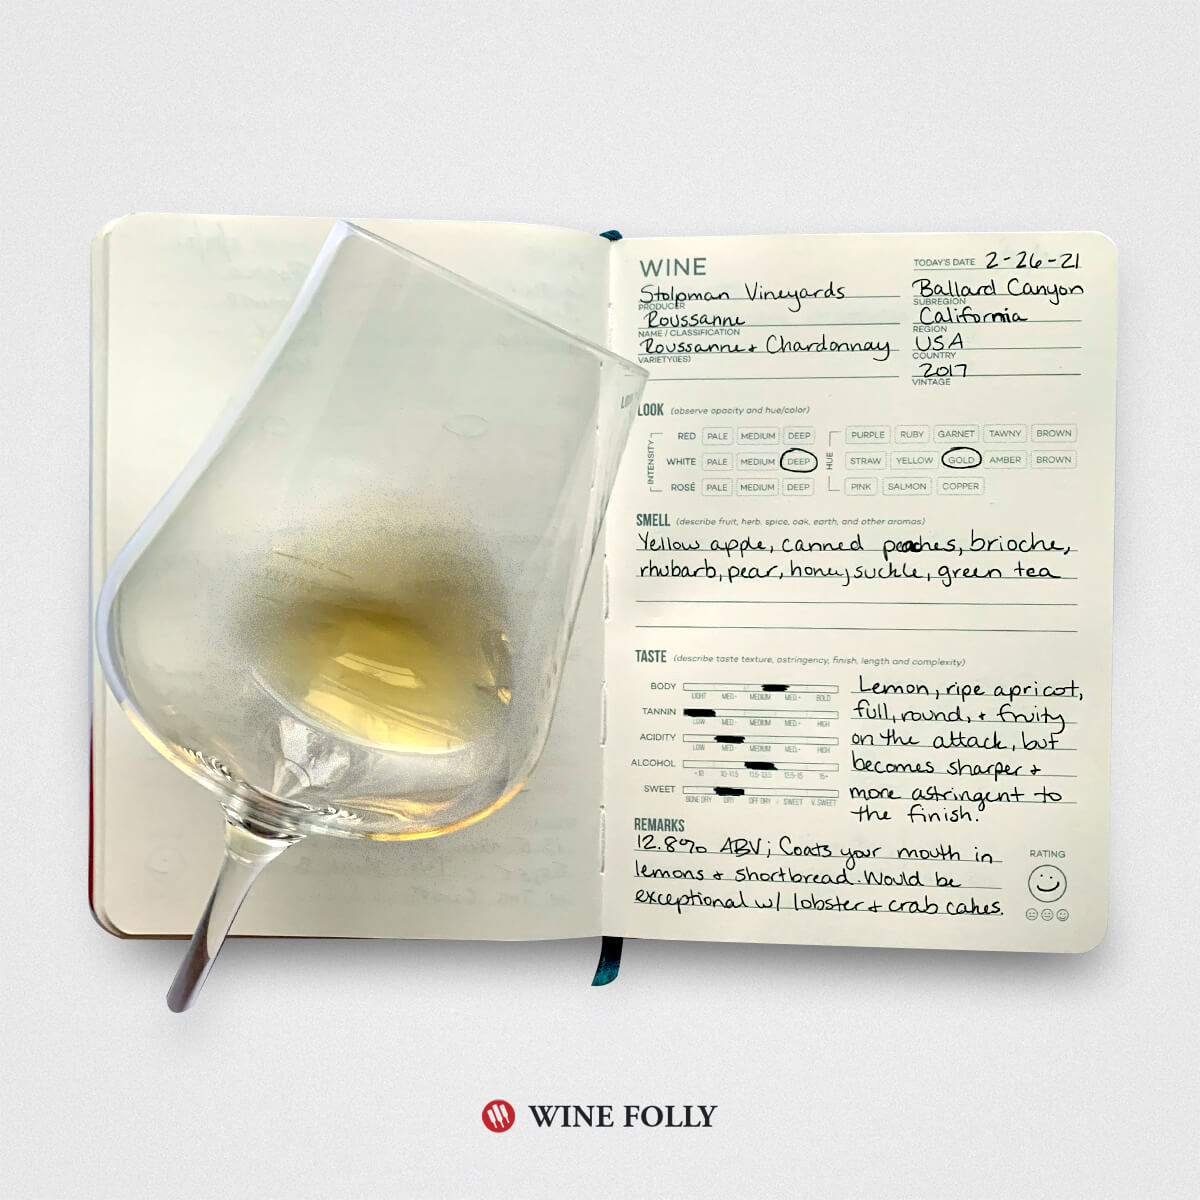 california-roussane-blend-tasting-notes-wine-journal